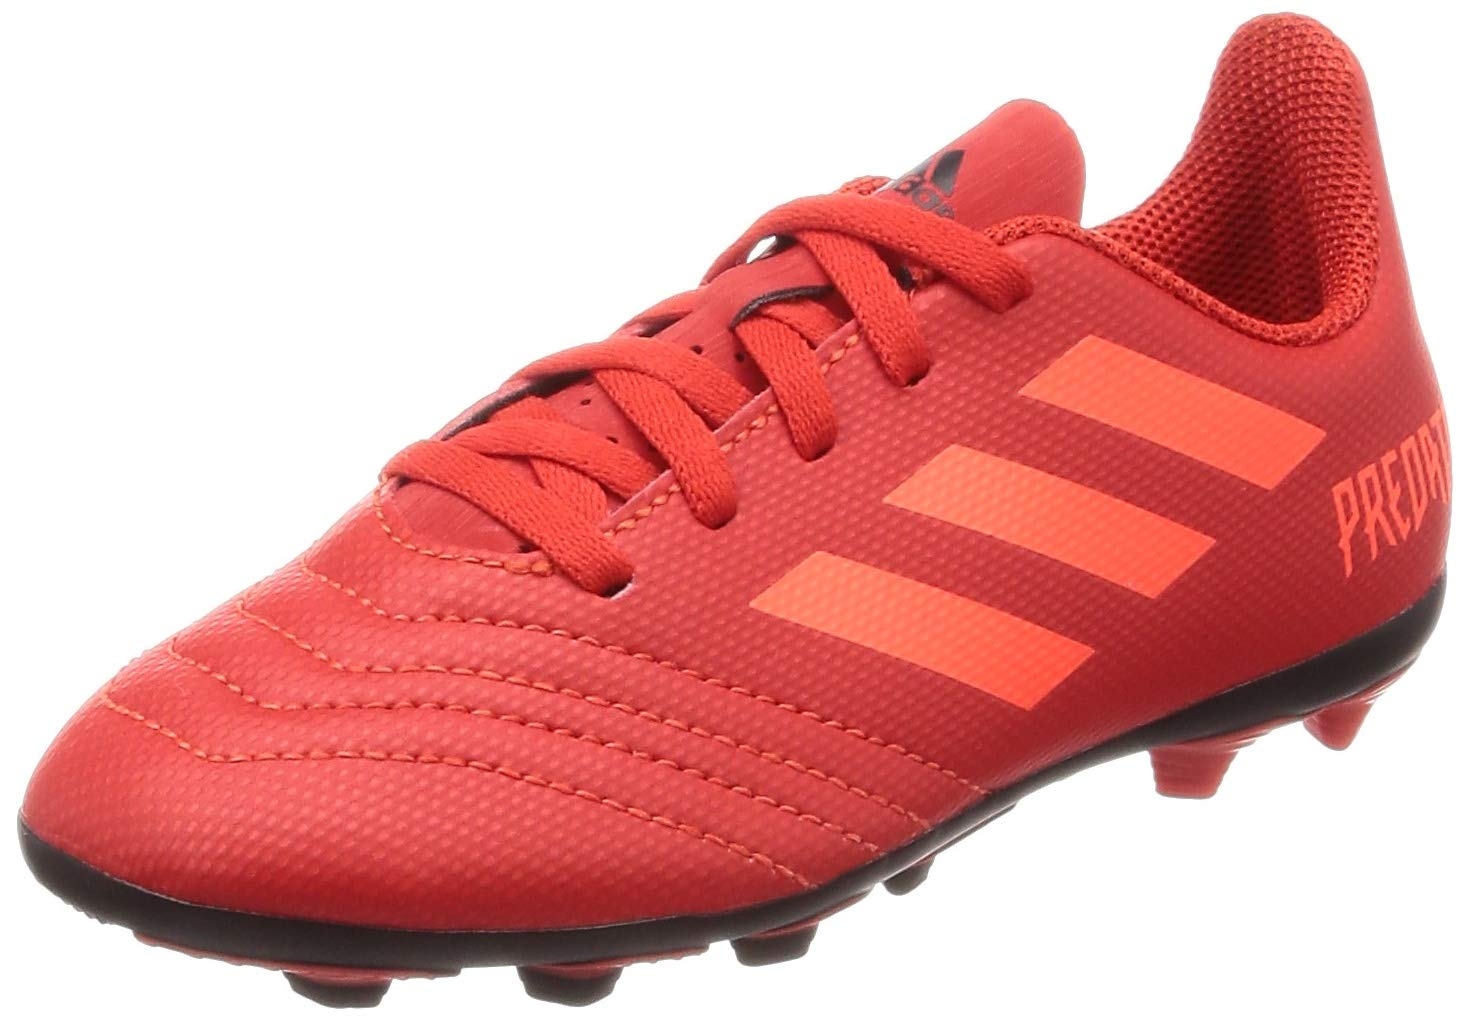 56b2156b7 adidas Predator 19.4 FG Firm Ground Kids Football Soccer Boot Initiator   Amazon.co.uk  Sports   Outdoors